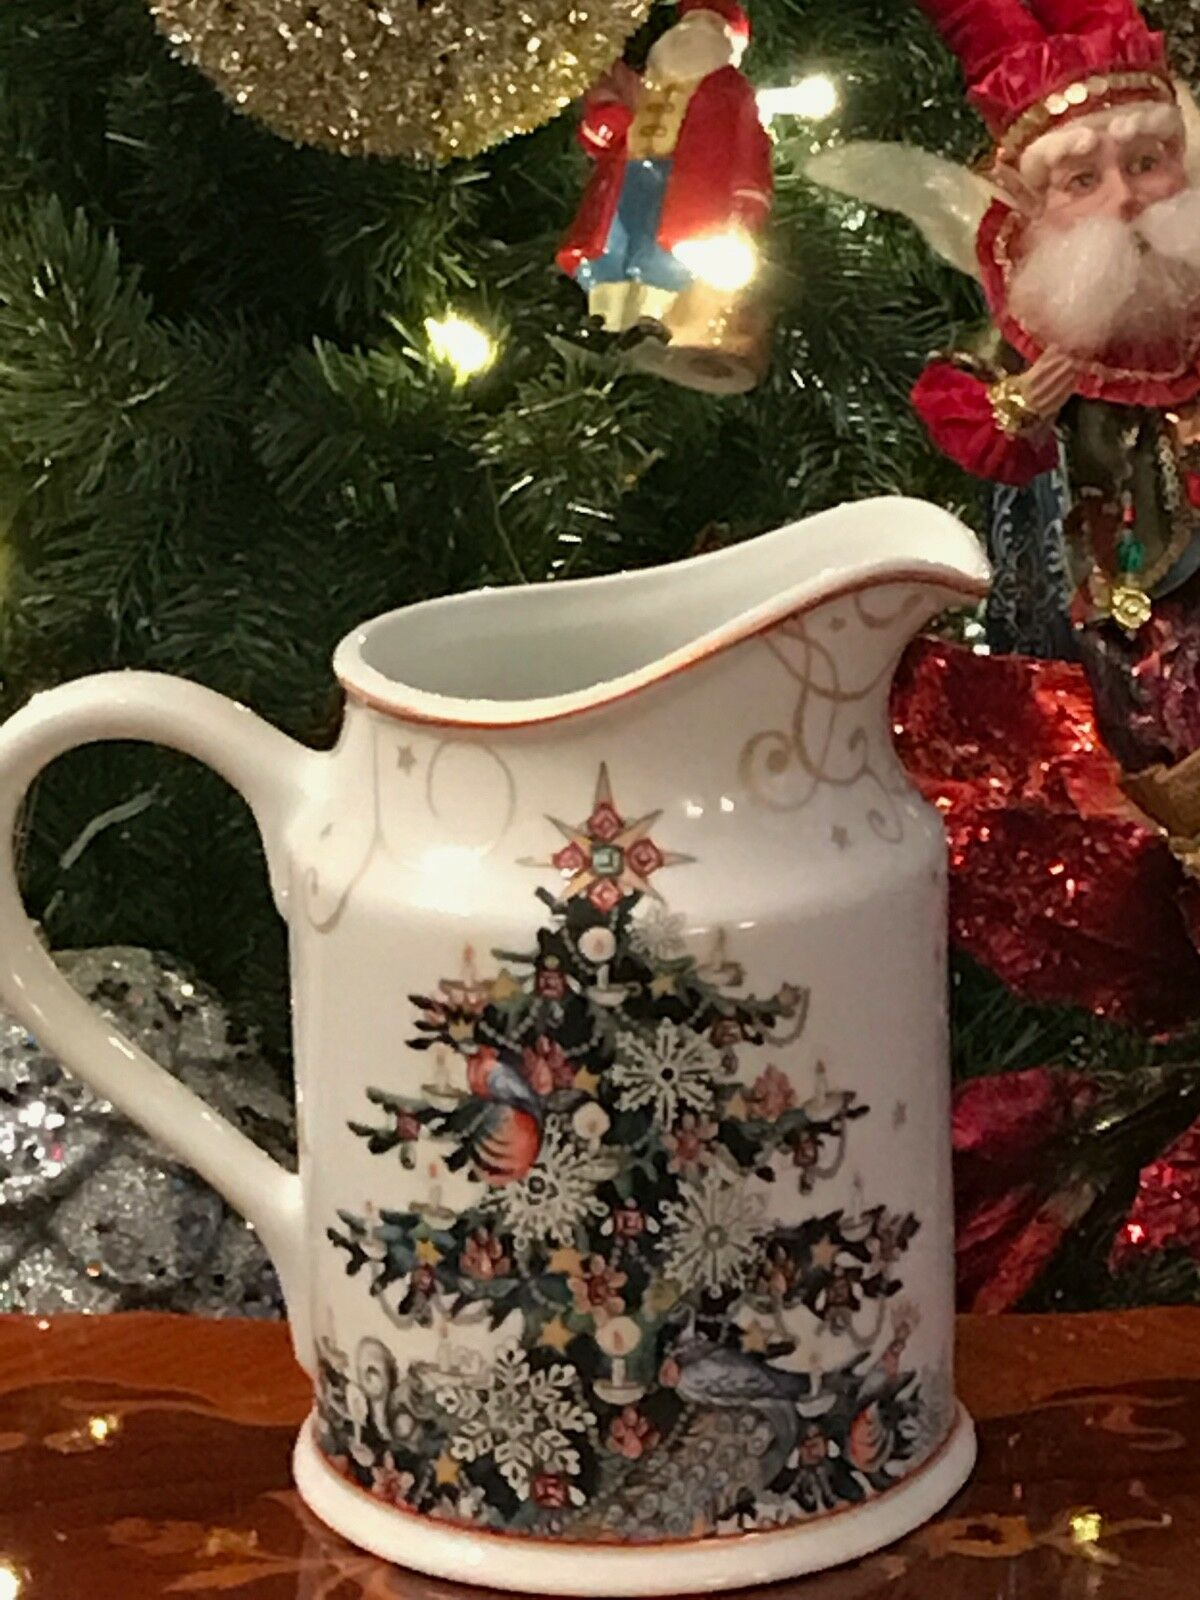 William Sonoma 'Twas the Night Before Christmas Pitcher - New